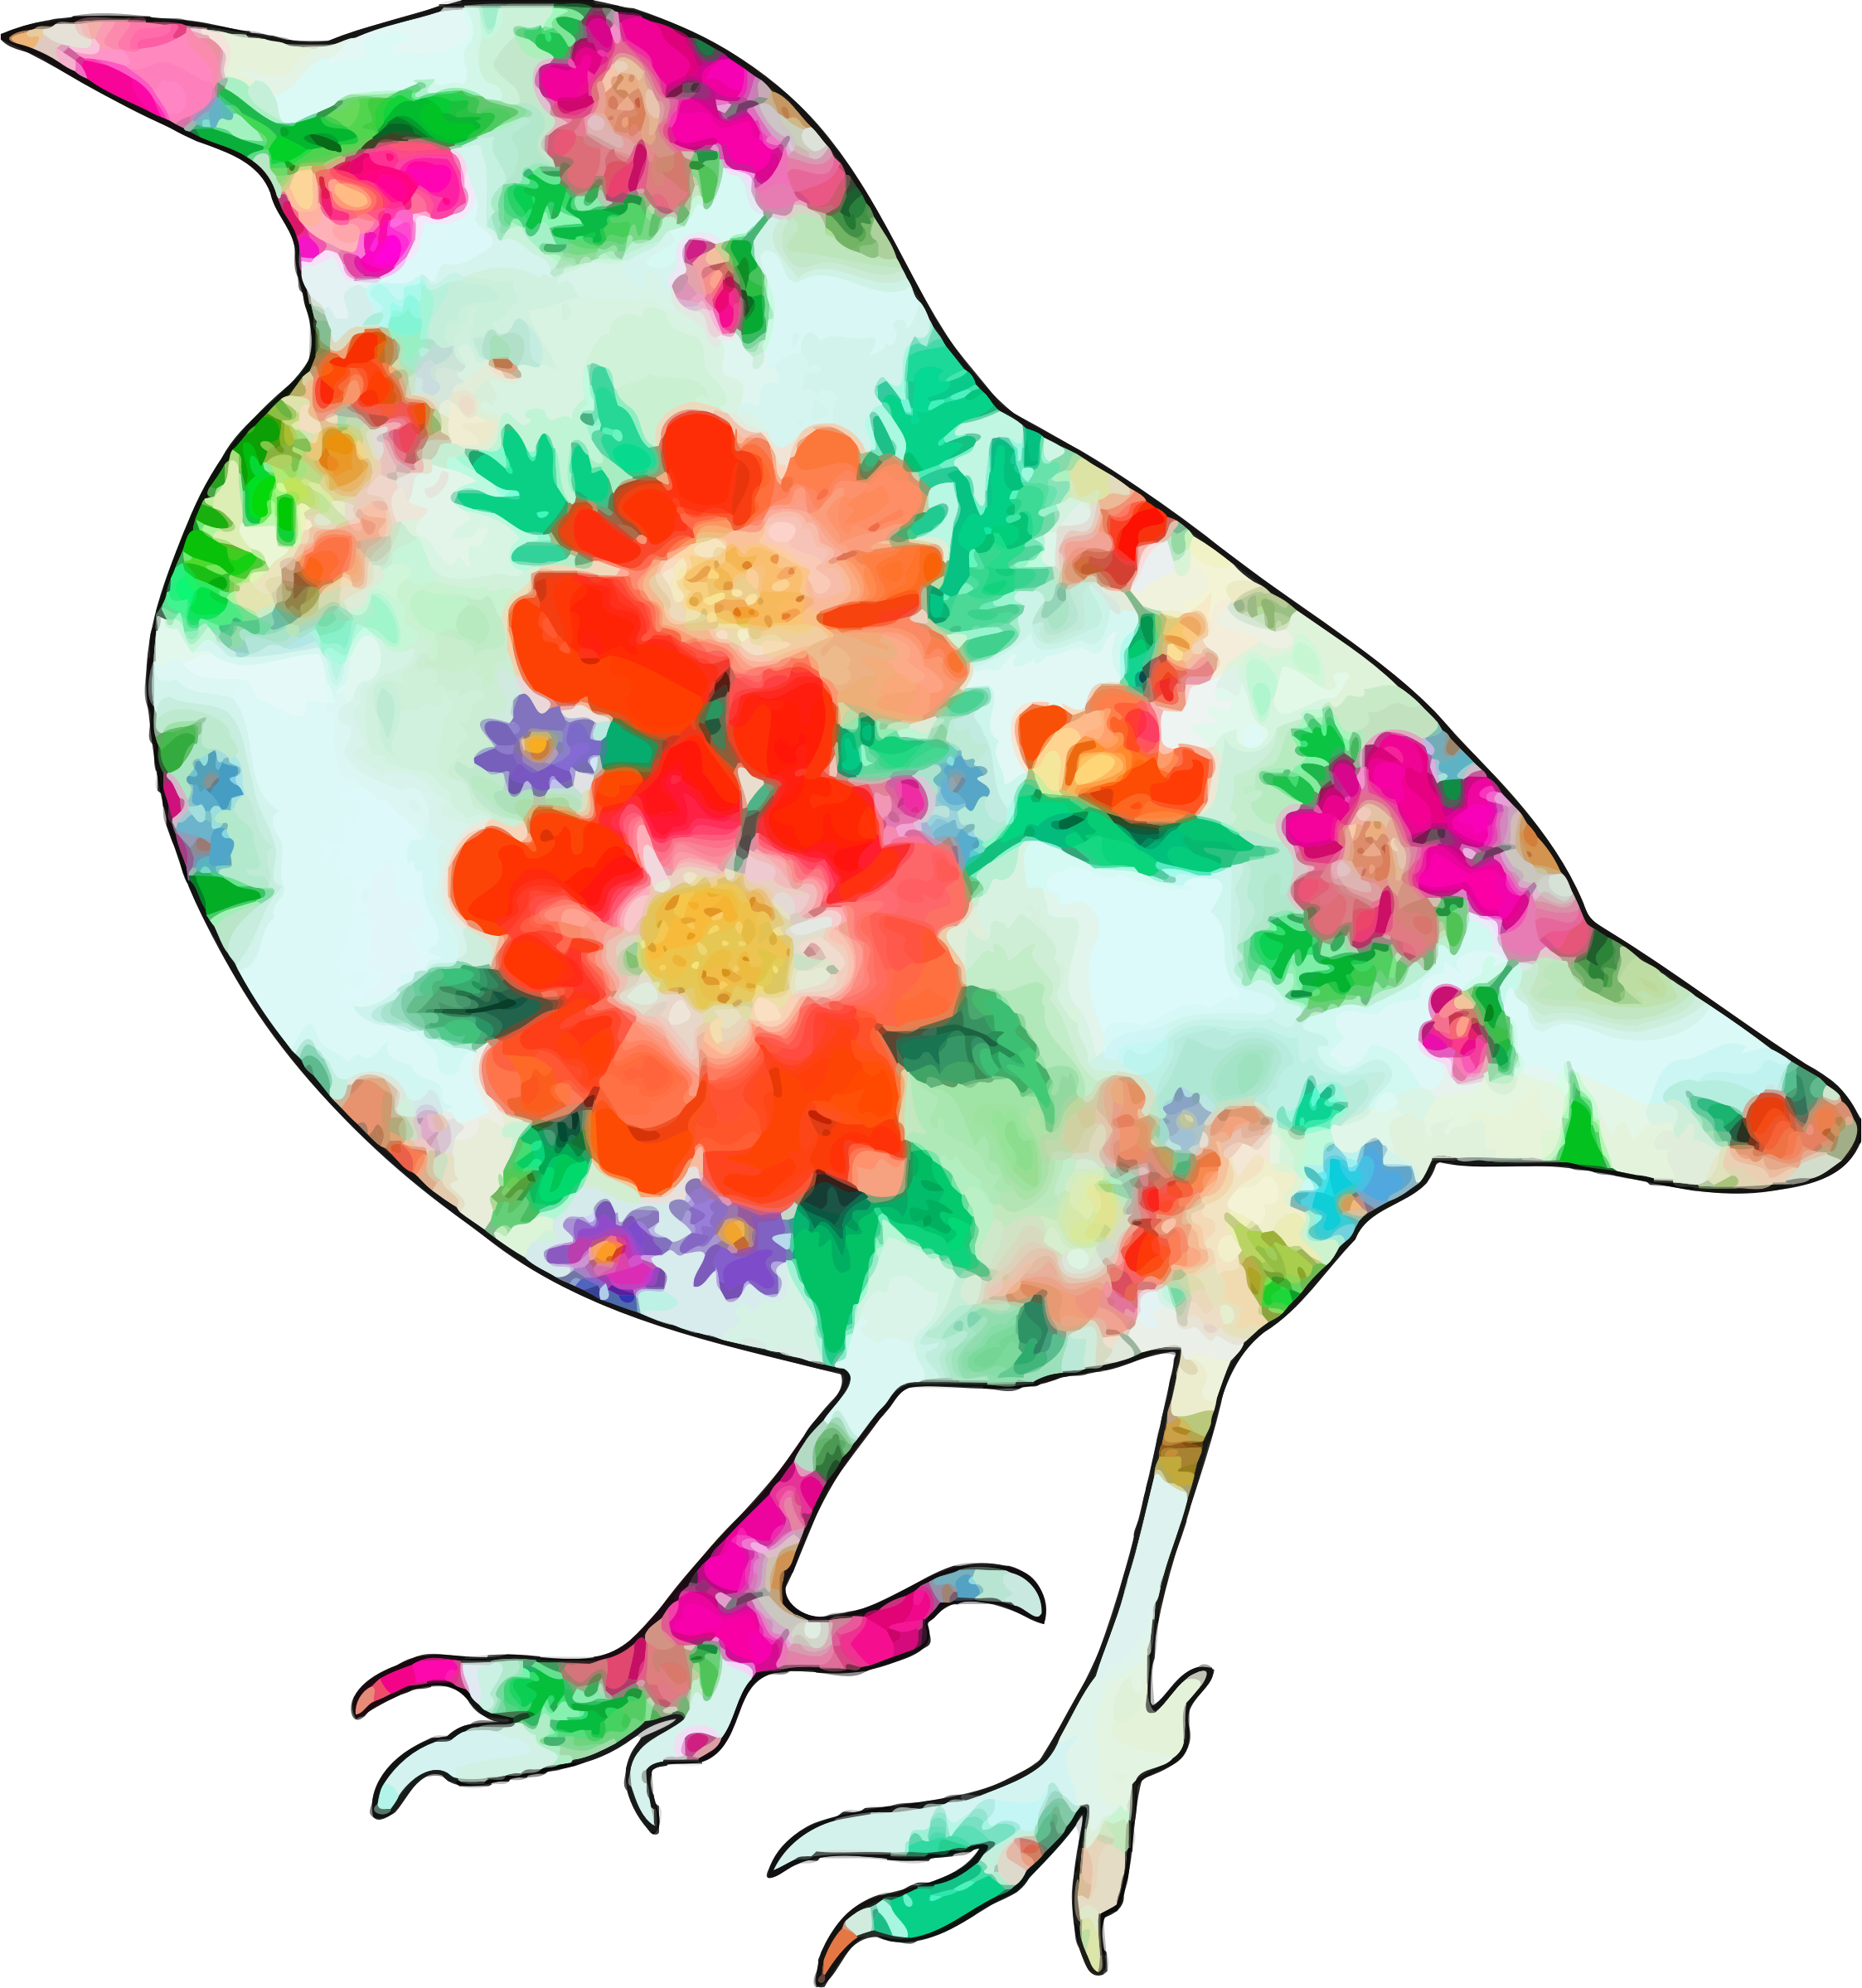 Floral bird 2 by Firkin